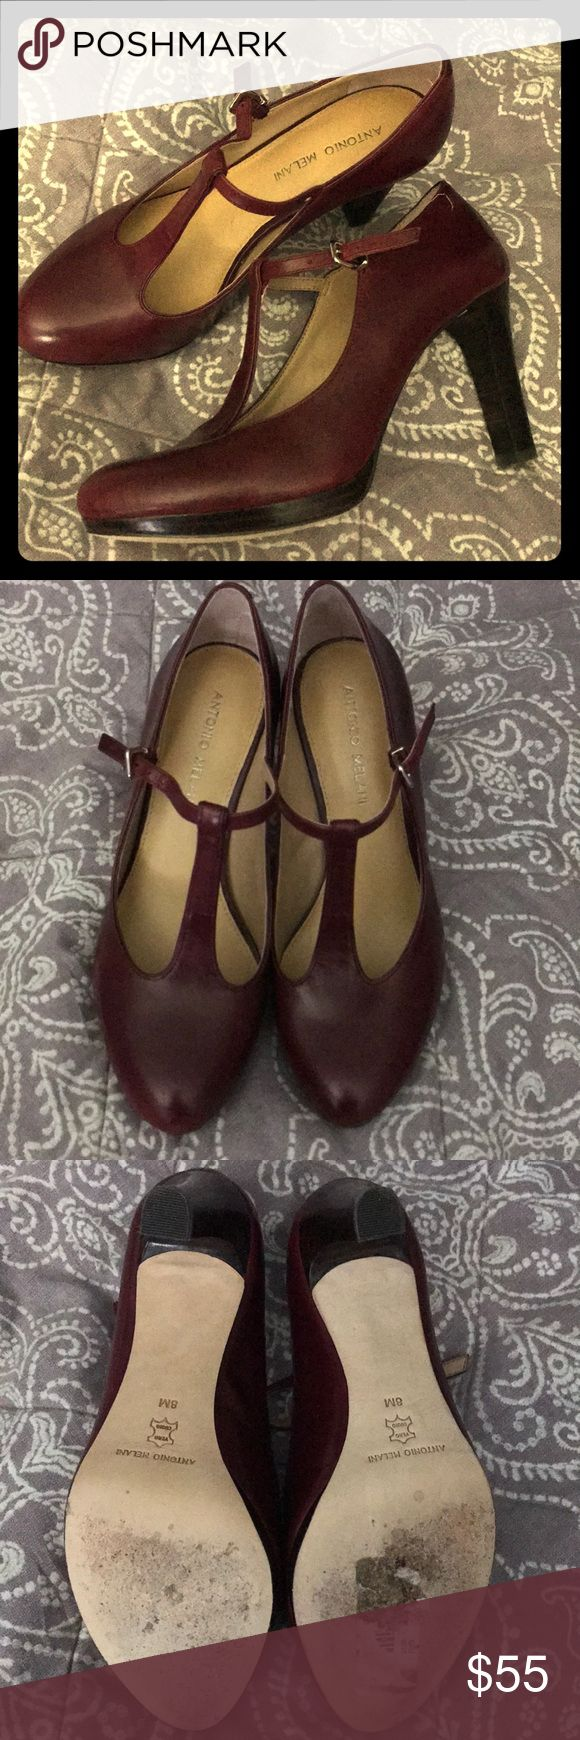 Gorgeous Antonio Melani T-Strap Leather Heels Absolutely gorgeous pair of Antonio Melani heels! Put these on with an LBD and bam! You're slaying the day!   Brand: Antonio Melani  Condition: EUC (worn maybe twice)  Size: 8  Color: Burgundy Style: T-Strap  Material: Leather ANTONIO MELANI Shoes Heels